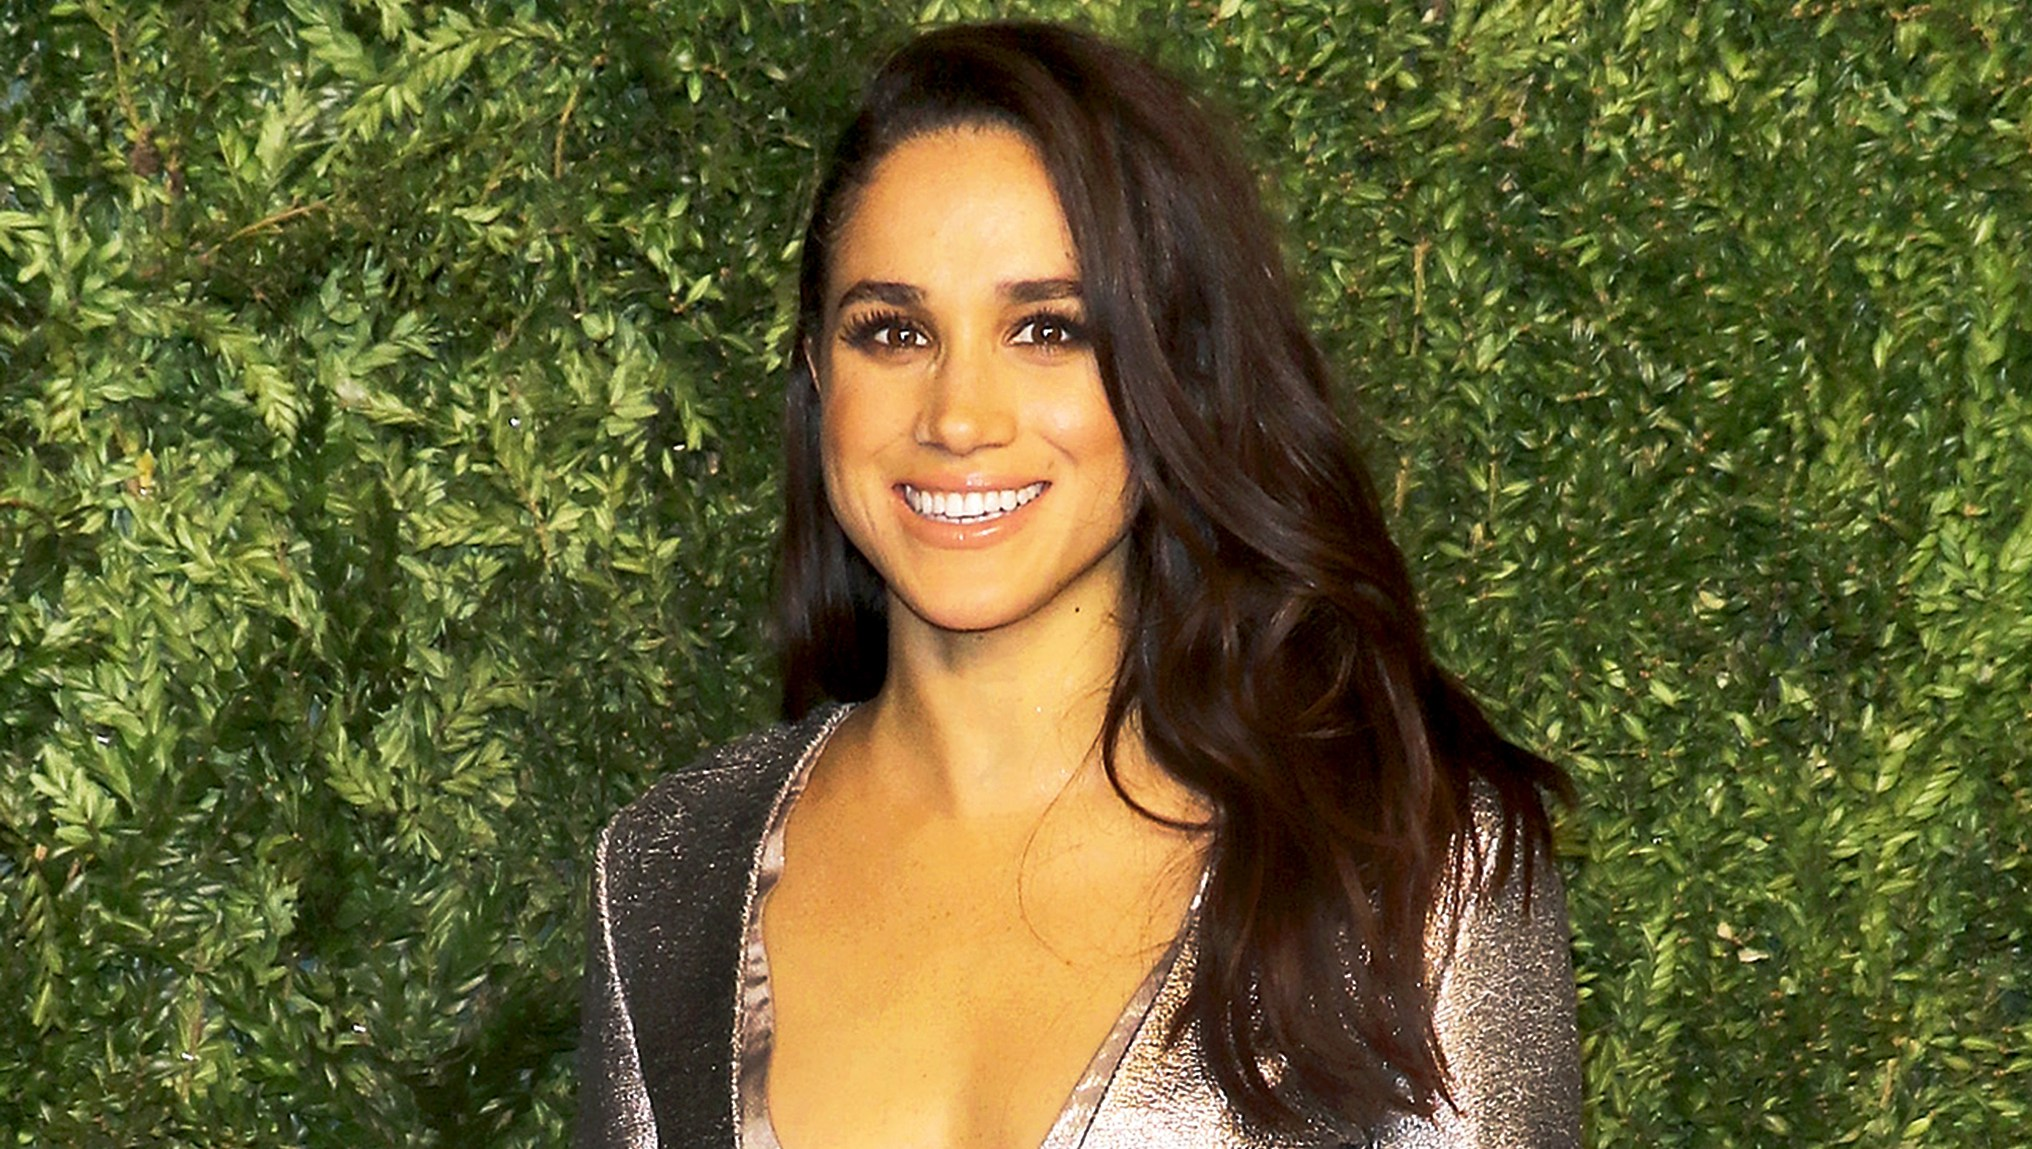 Meghan Markle attends the 12th annual CFDA/Vogue Fashion Fund Awards at Spring Studios in New York City.